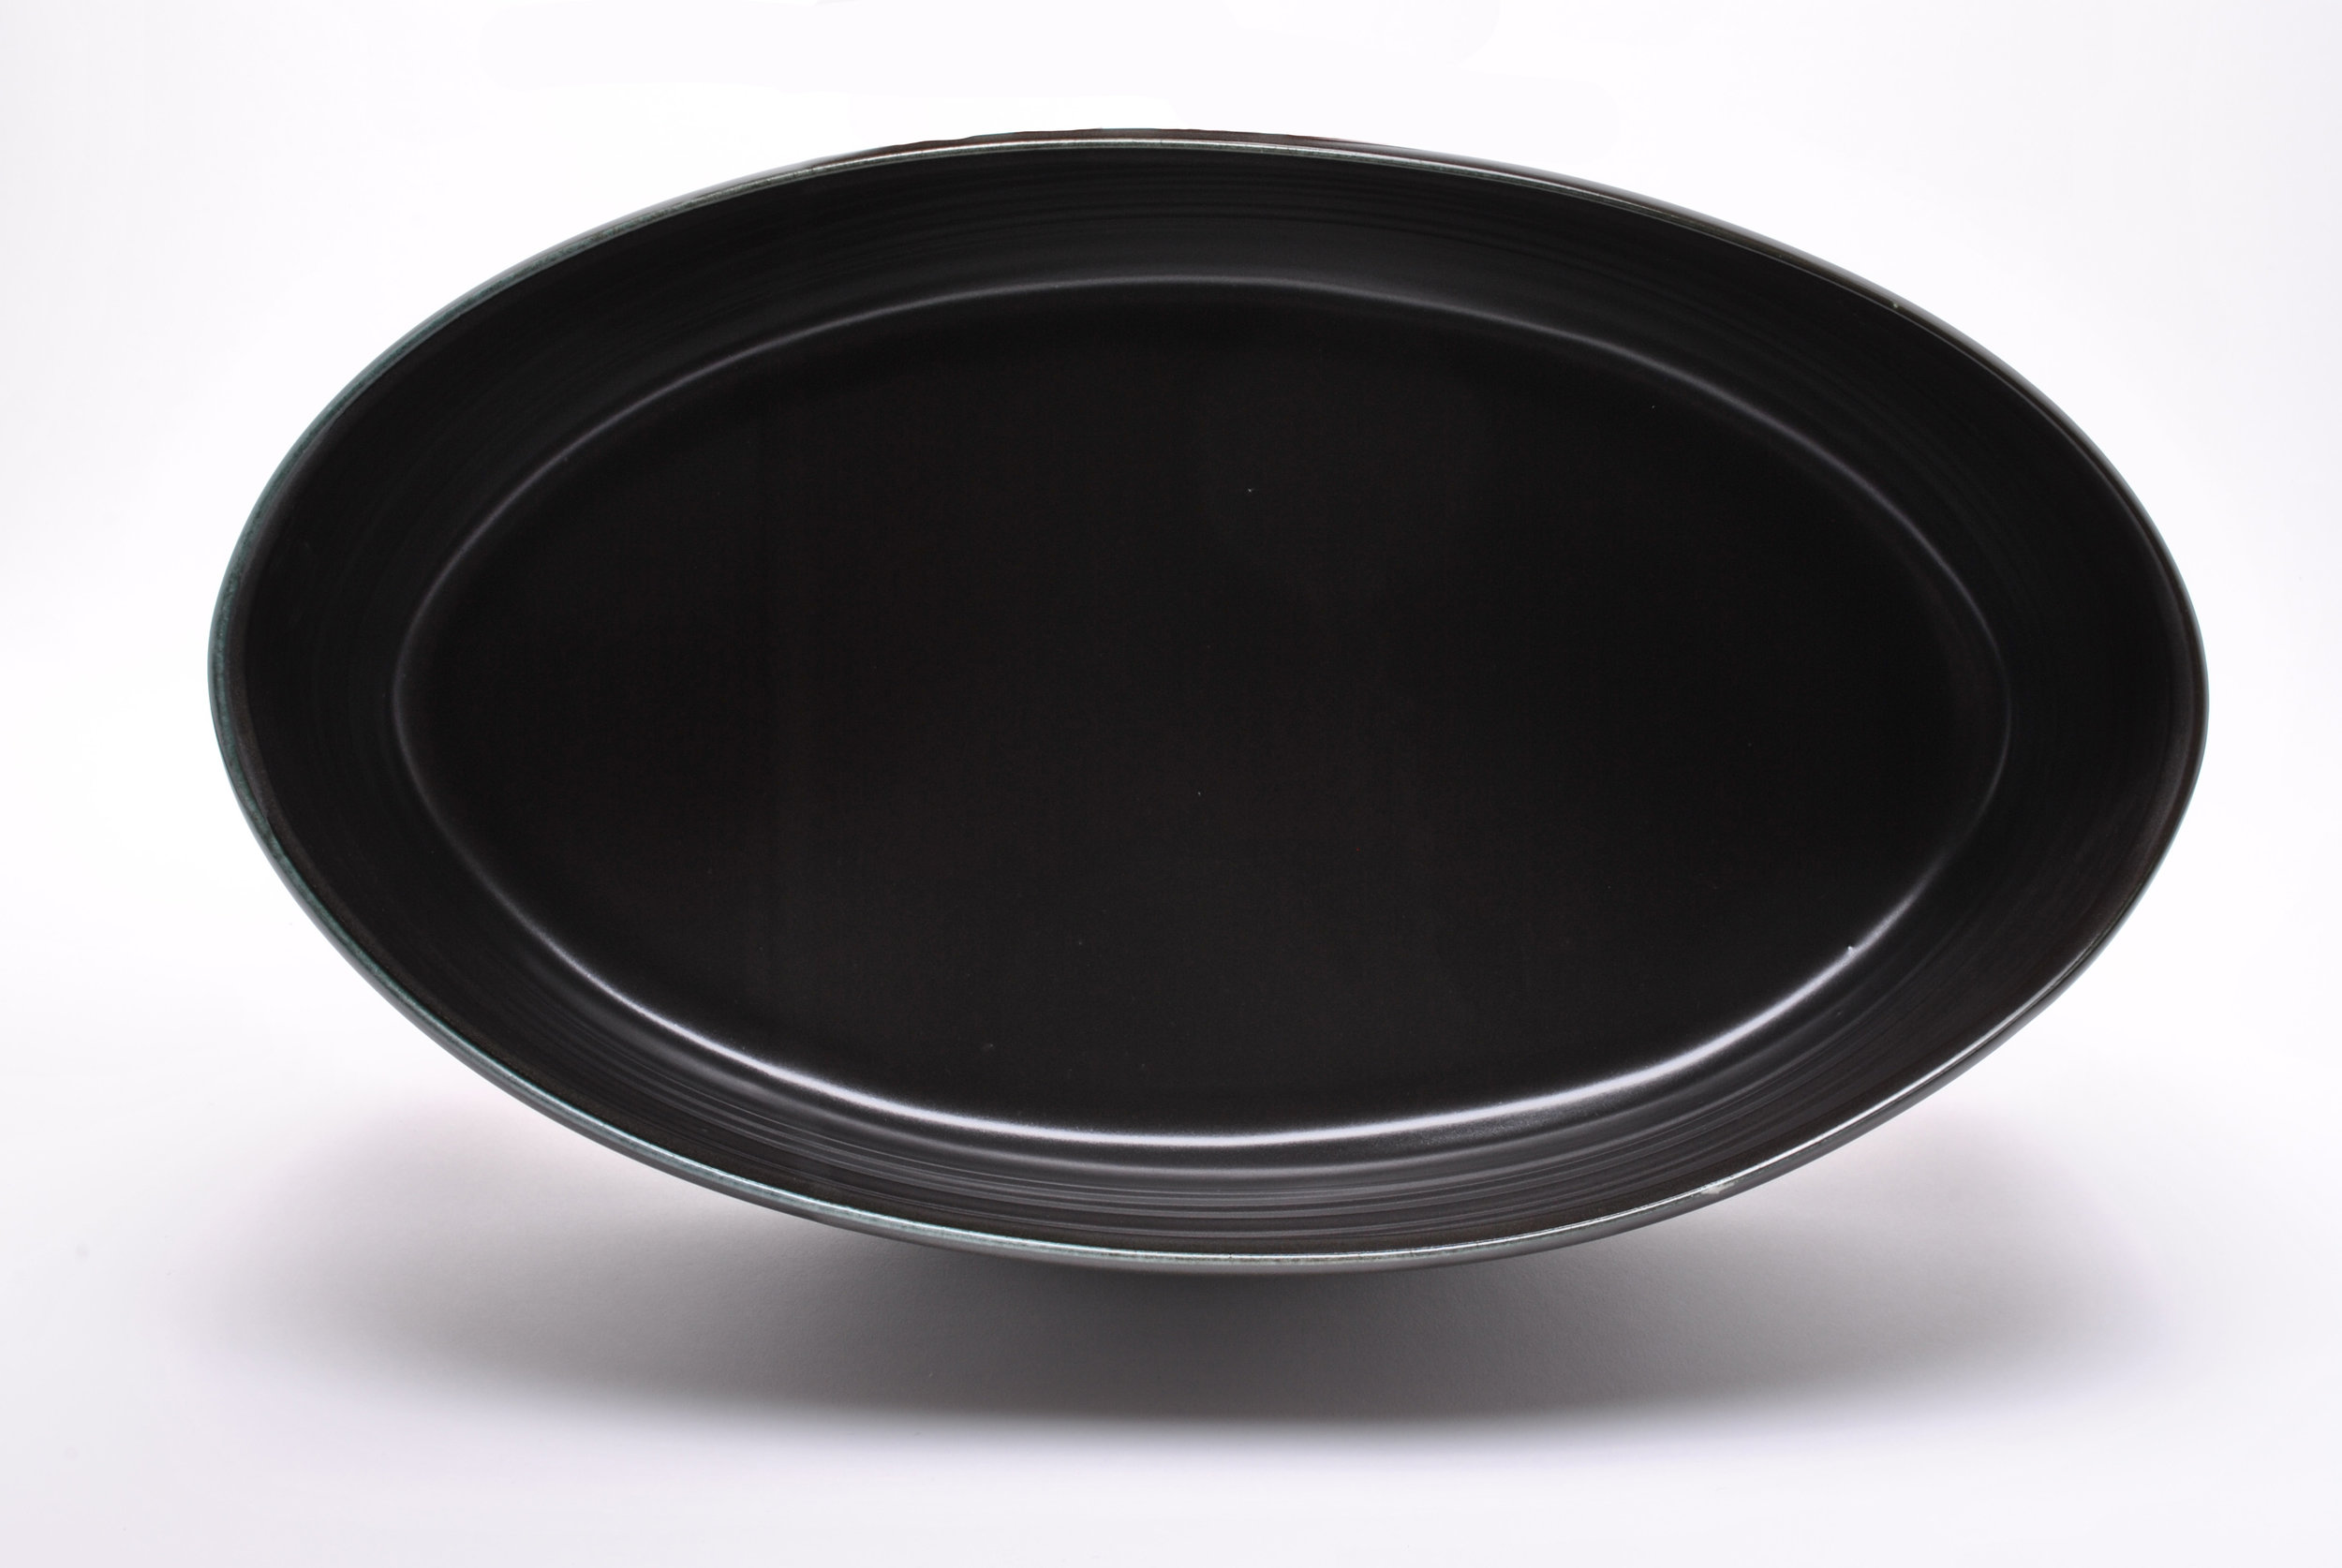 Large Black Oval (Interior View)